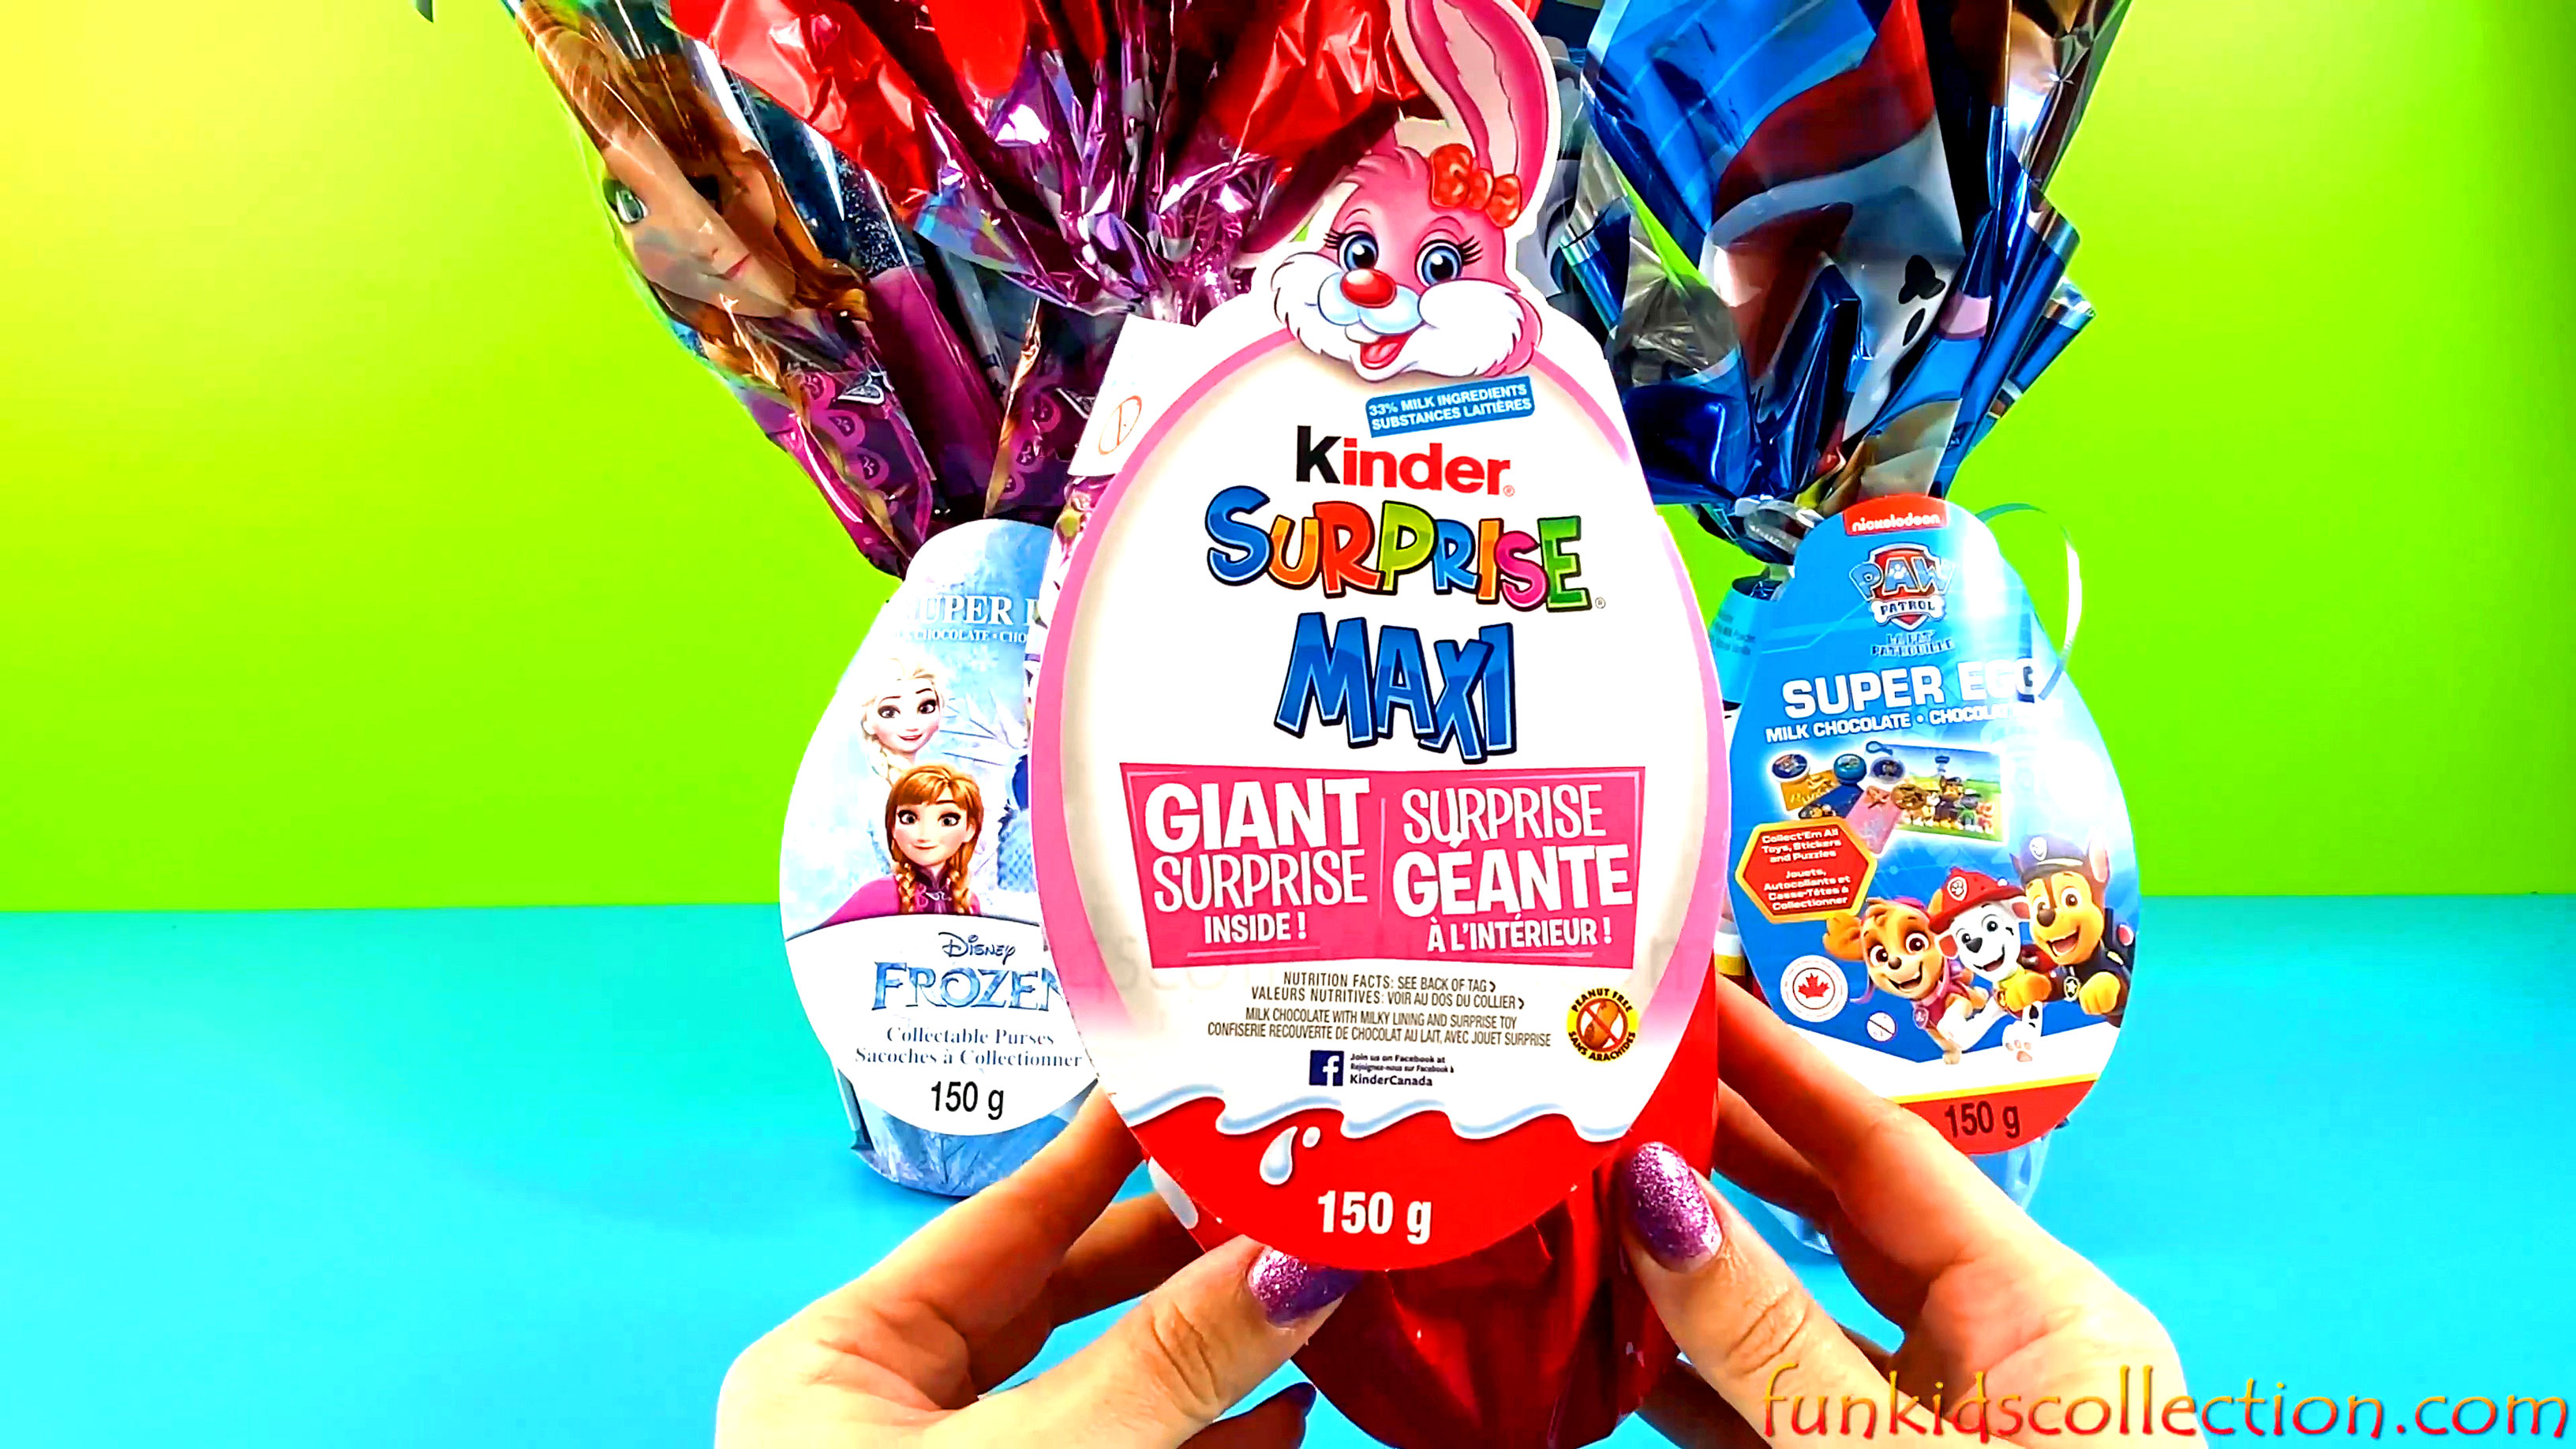 Disney Frozen Collectable Purses Super Egg | Giant Egg Kinder Surprise Maxi | Paw Patrol Super Egg